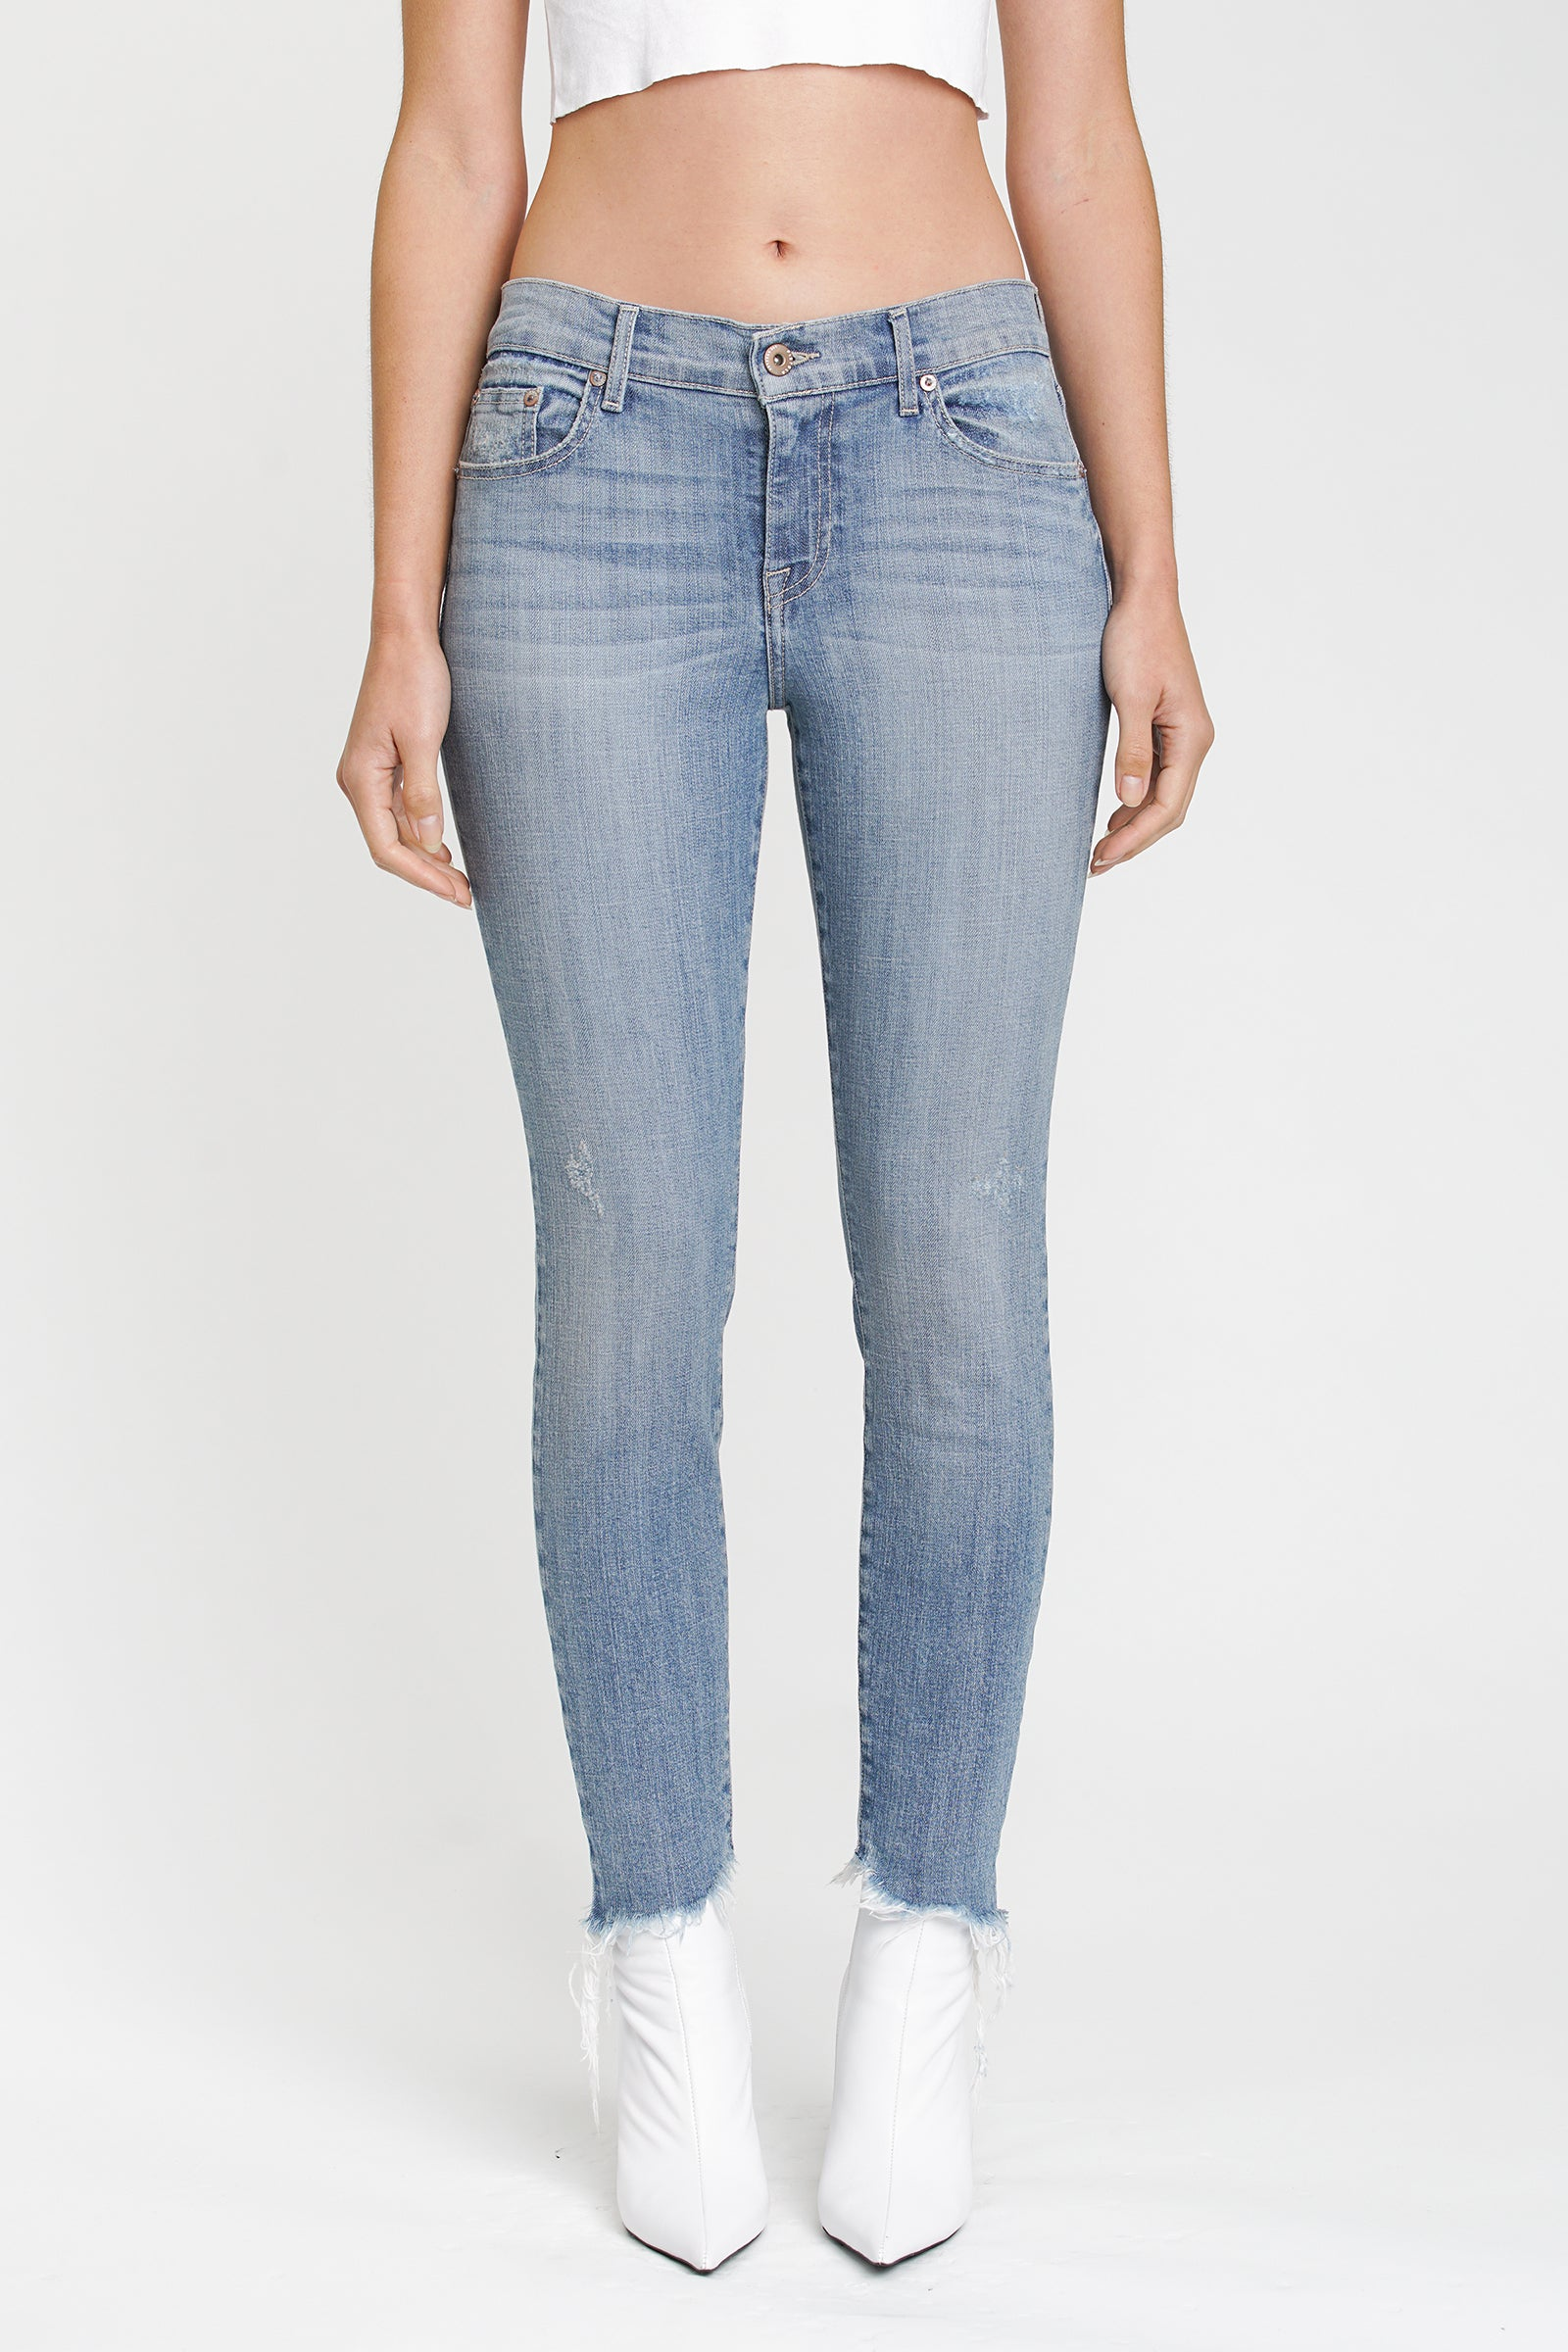 Audrey Mid Rise Skinny - Break Through